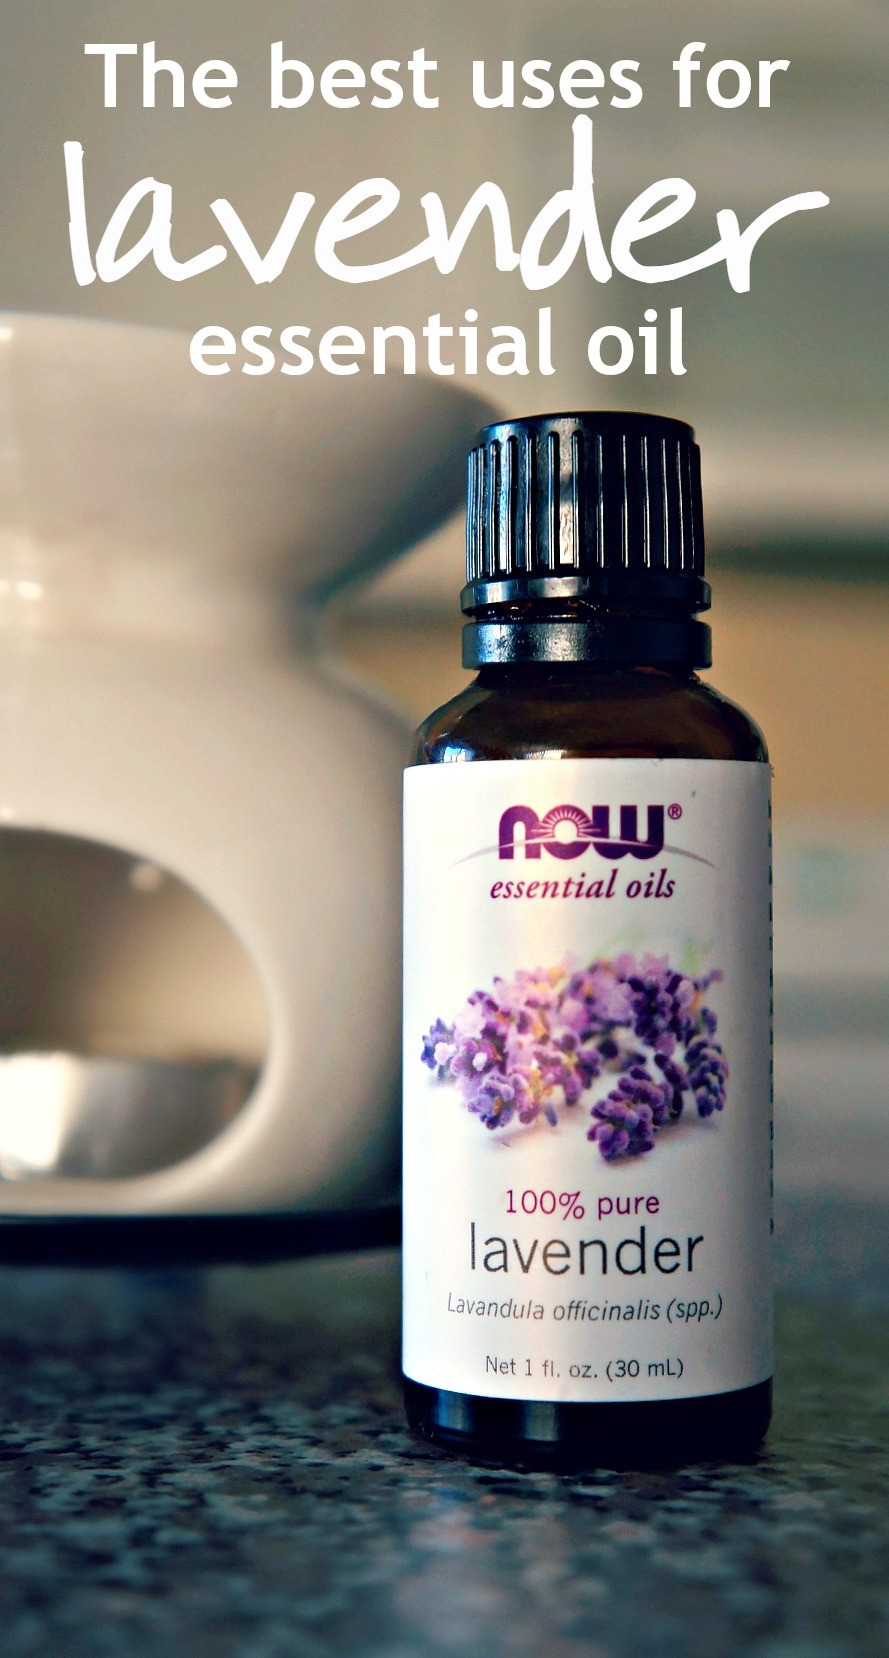 12 of The Best Natural Uses for Lavender Essential Oil You Should Know